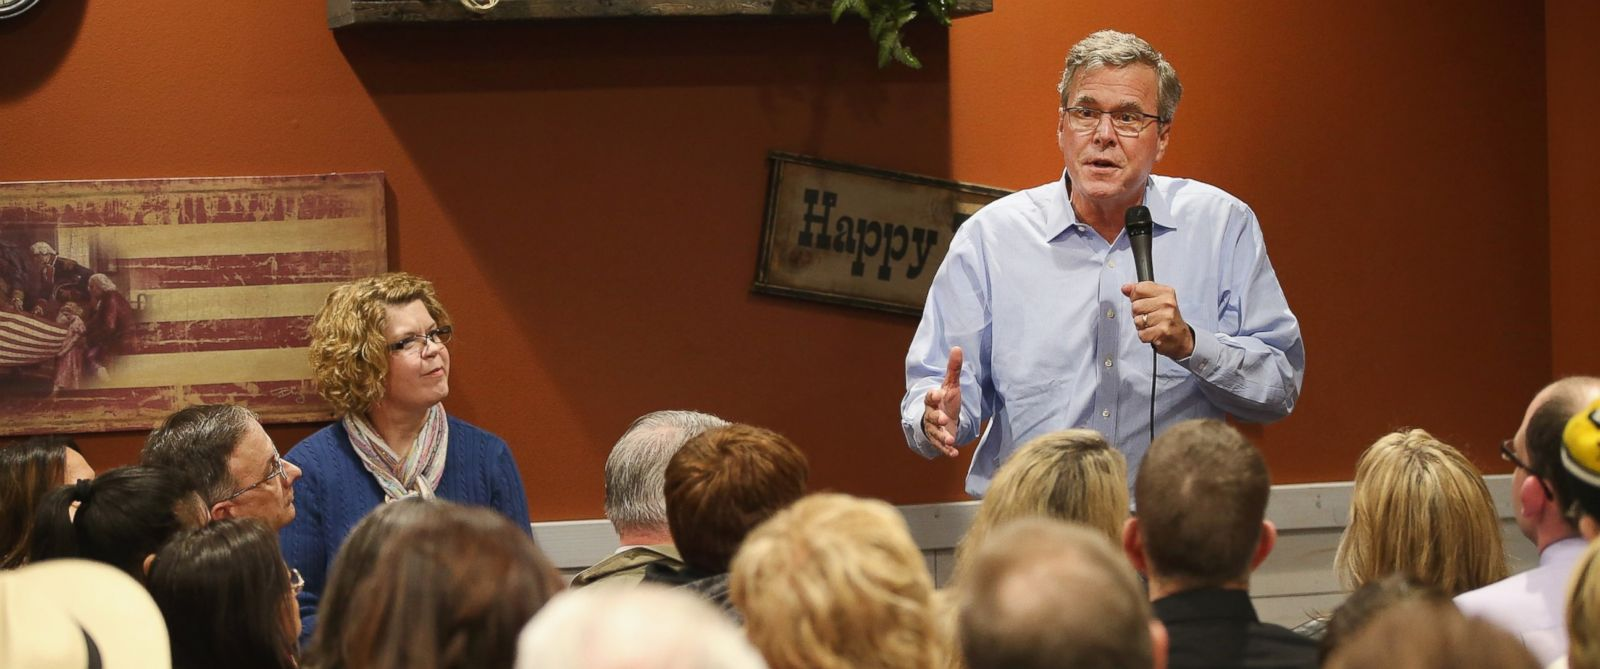 PHOTO: Former Florida Governor Jeb Bush speaks to Iowa residents at a Pizza Ranch restaurant on March 7, 2015 in Cedar Rapids, Iowa.